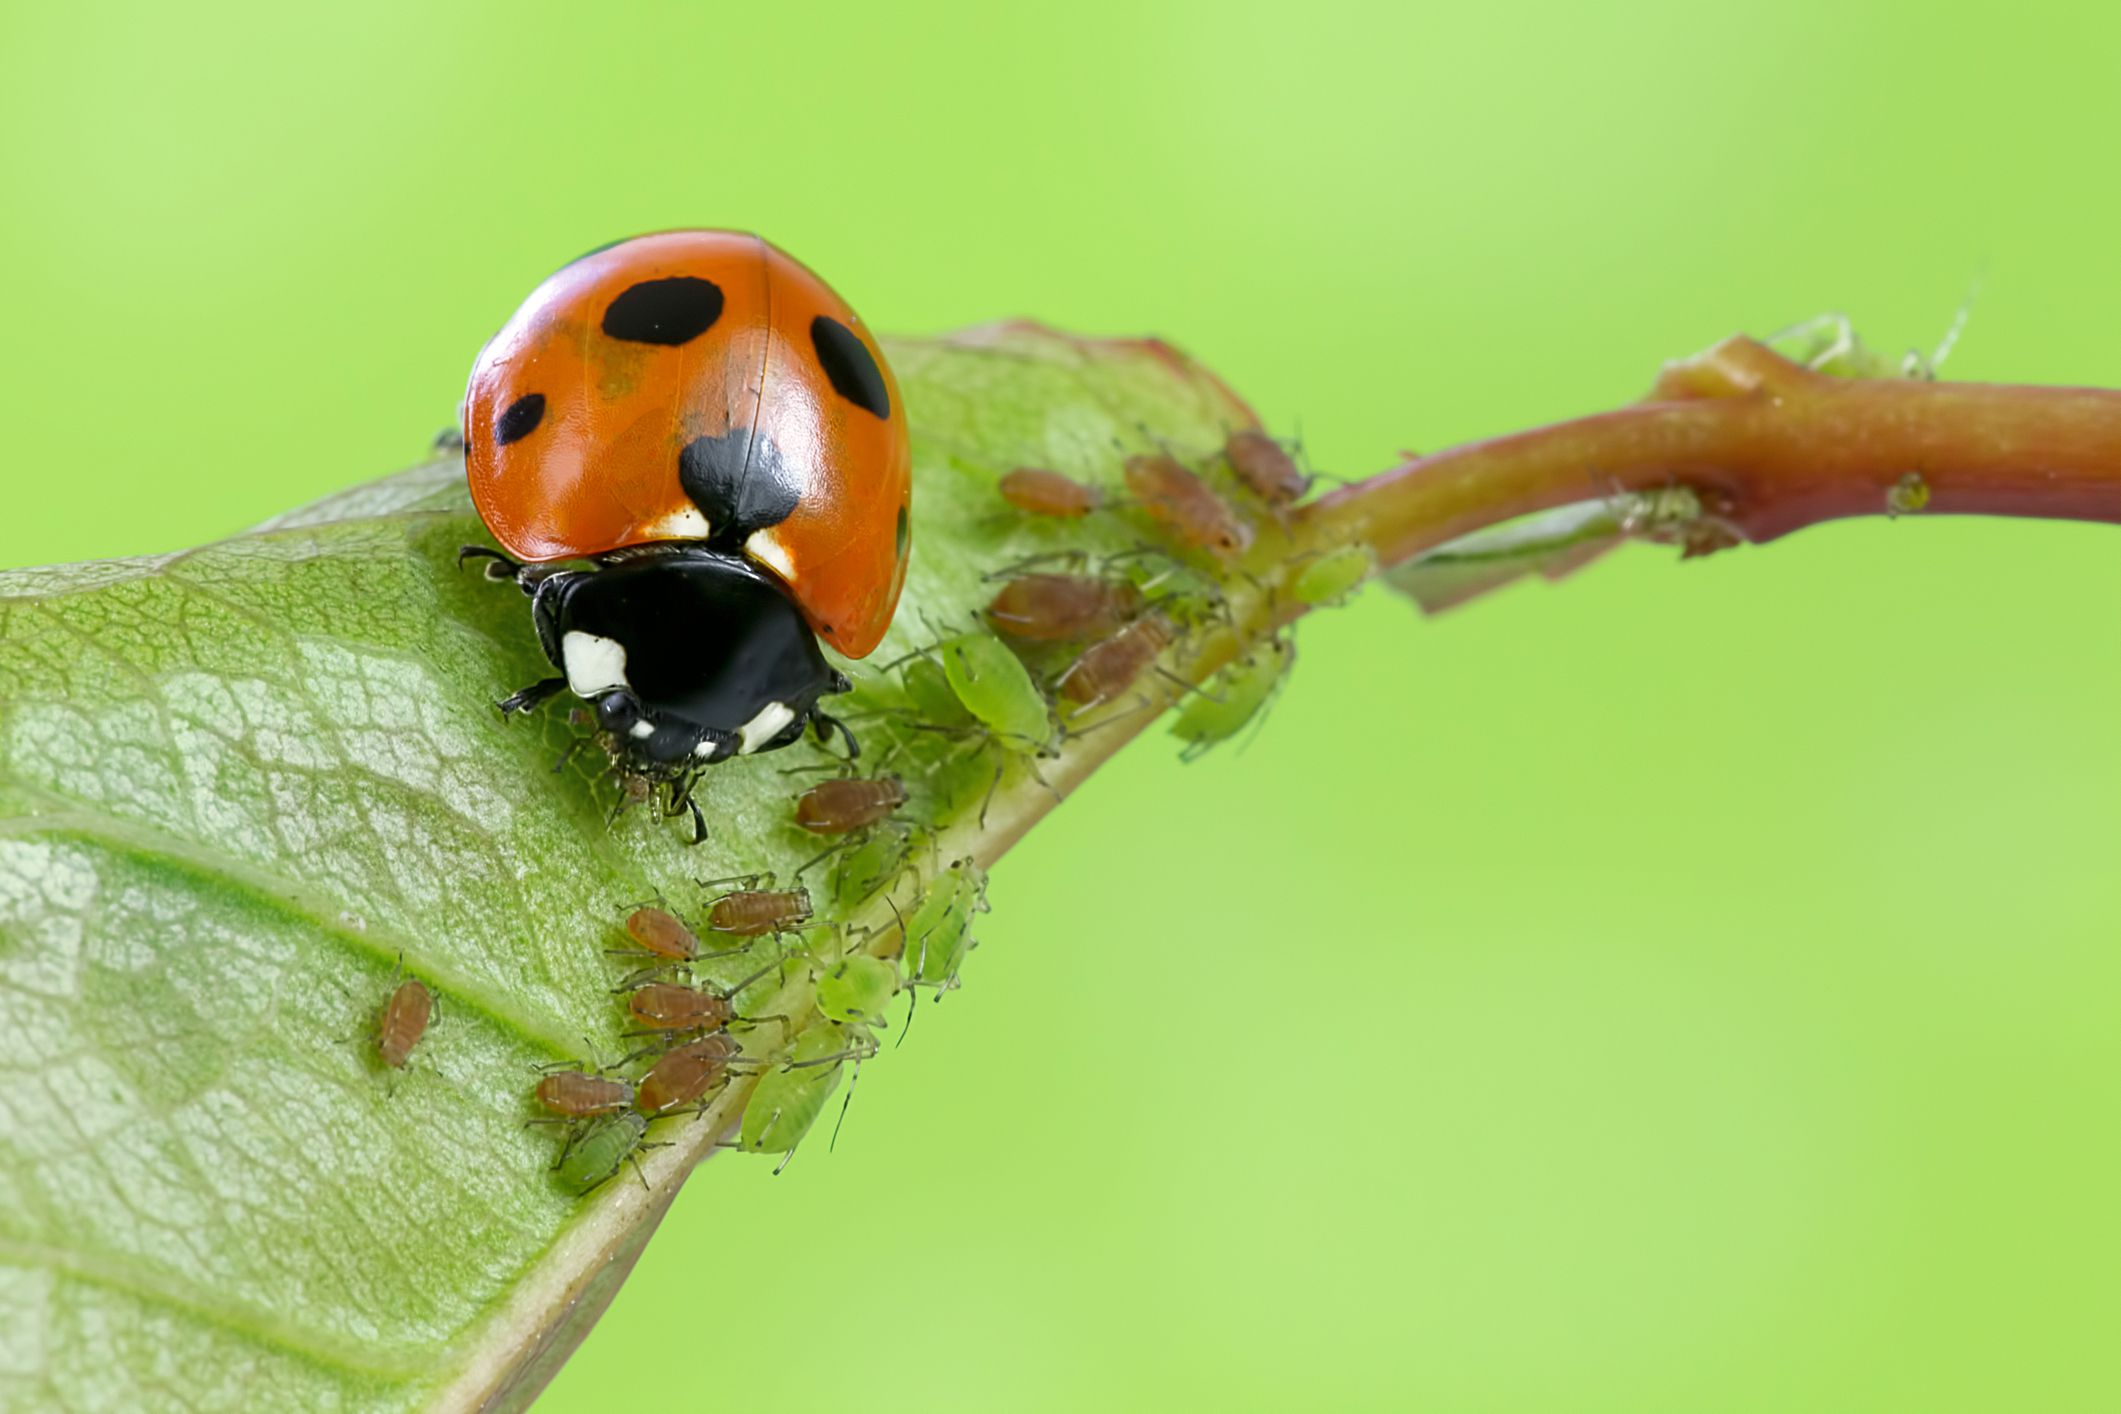 Garden to Attract Beneficial Insects